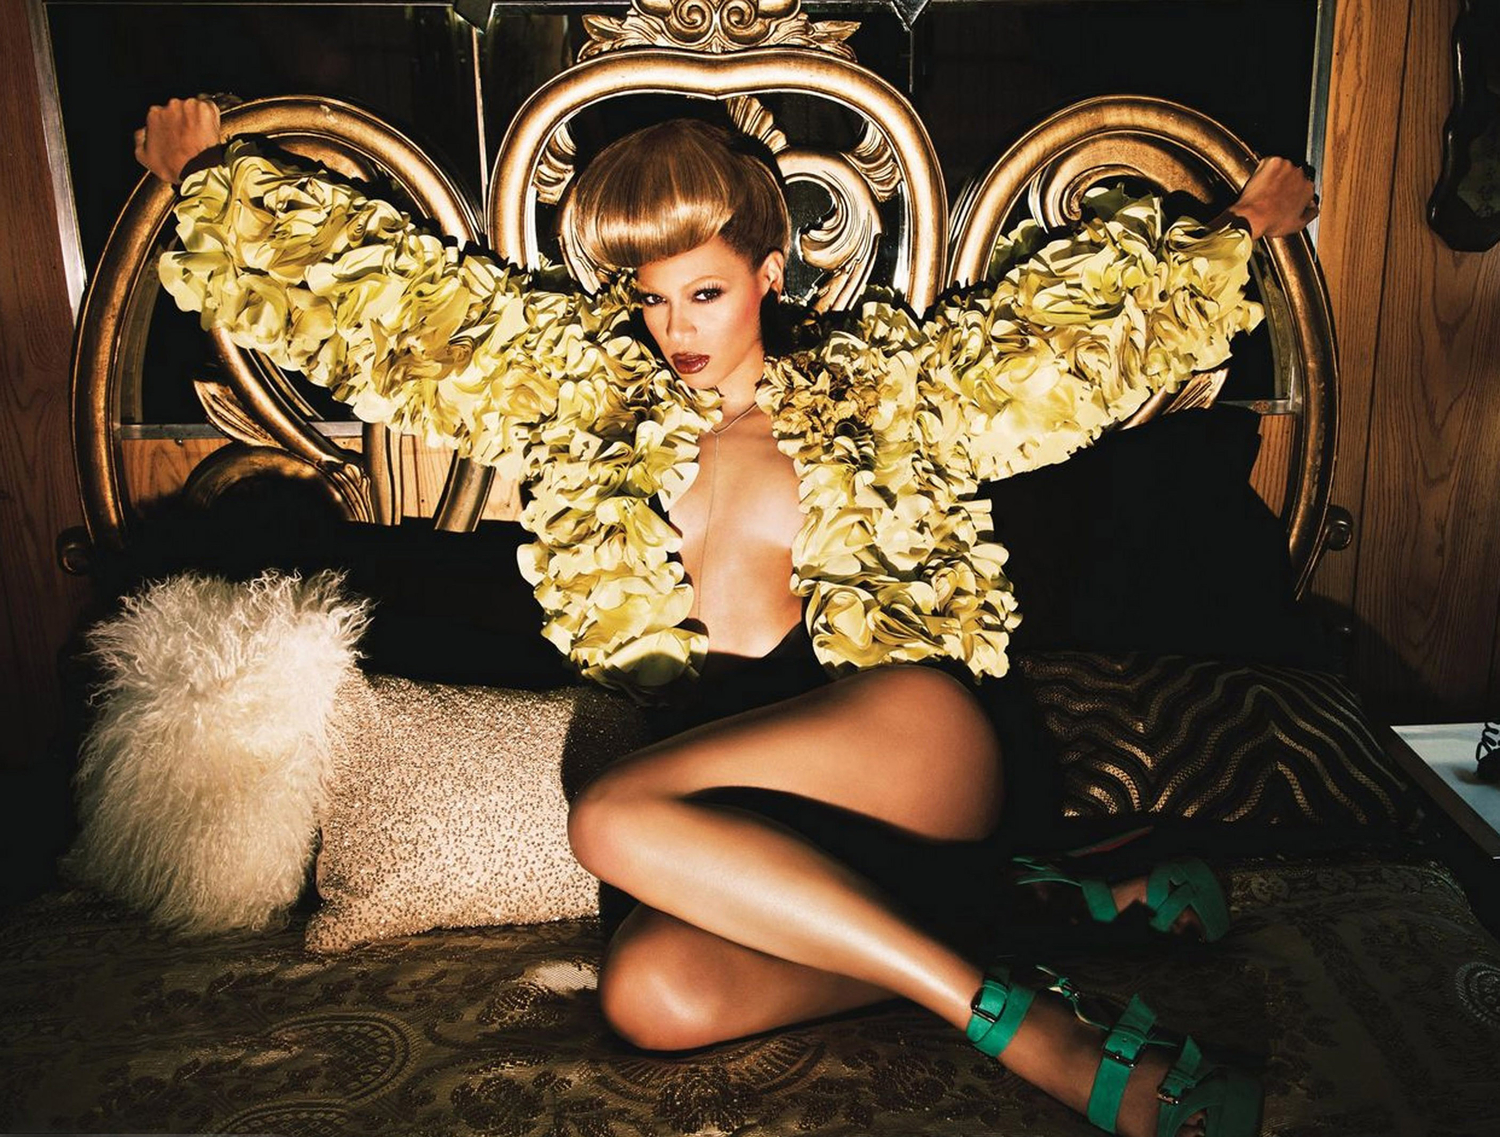 Beyonce New Album Is Super PowerFul Featuring Frank Ocean, Jay Z, Drake Plus More!